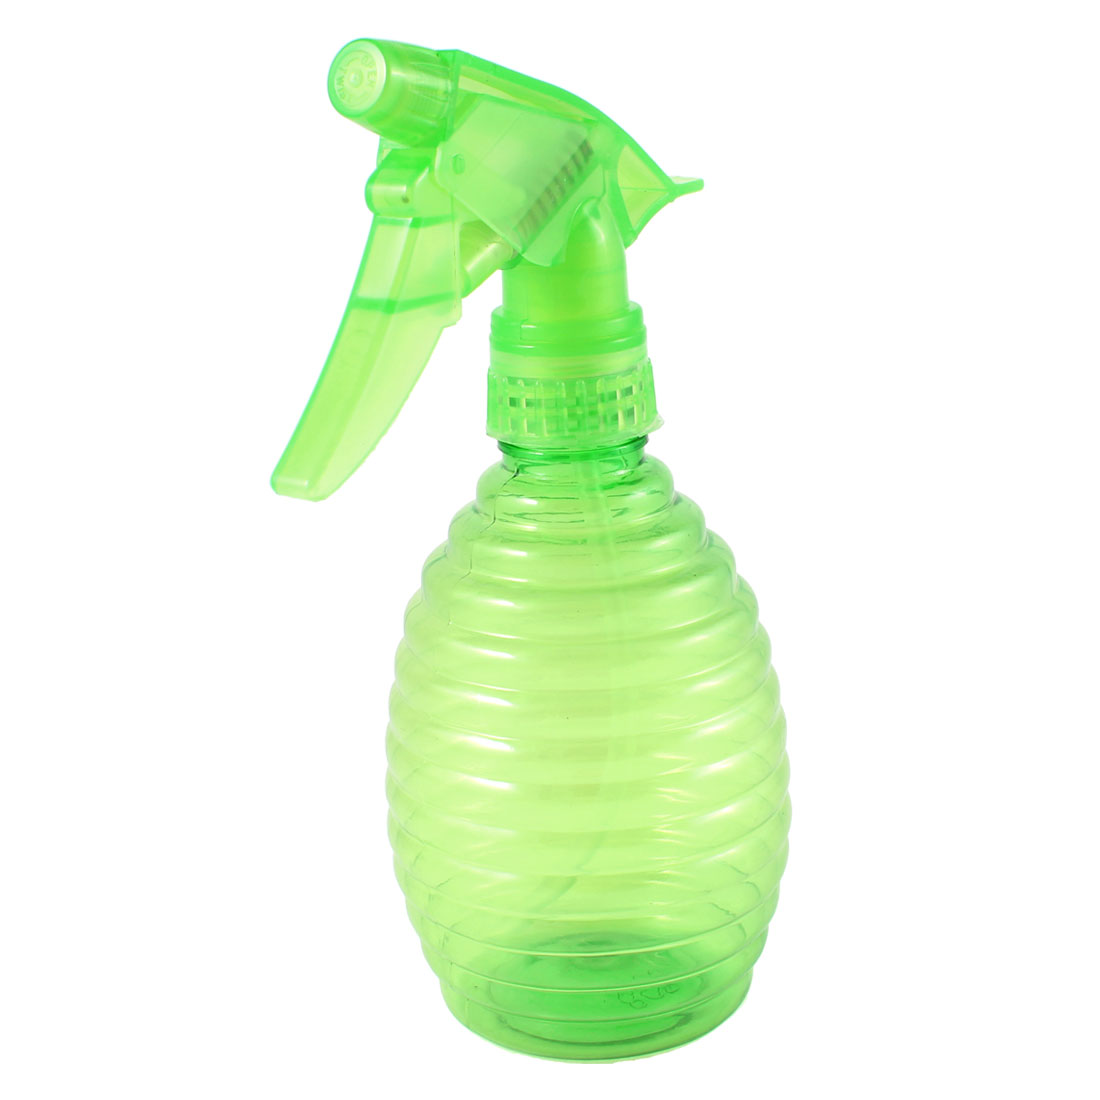 350ml Green Plastic Trigger Bottle Hairdressing Water Sprayer